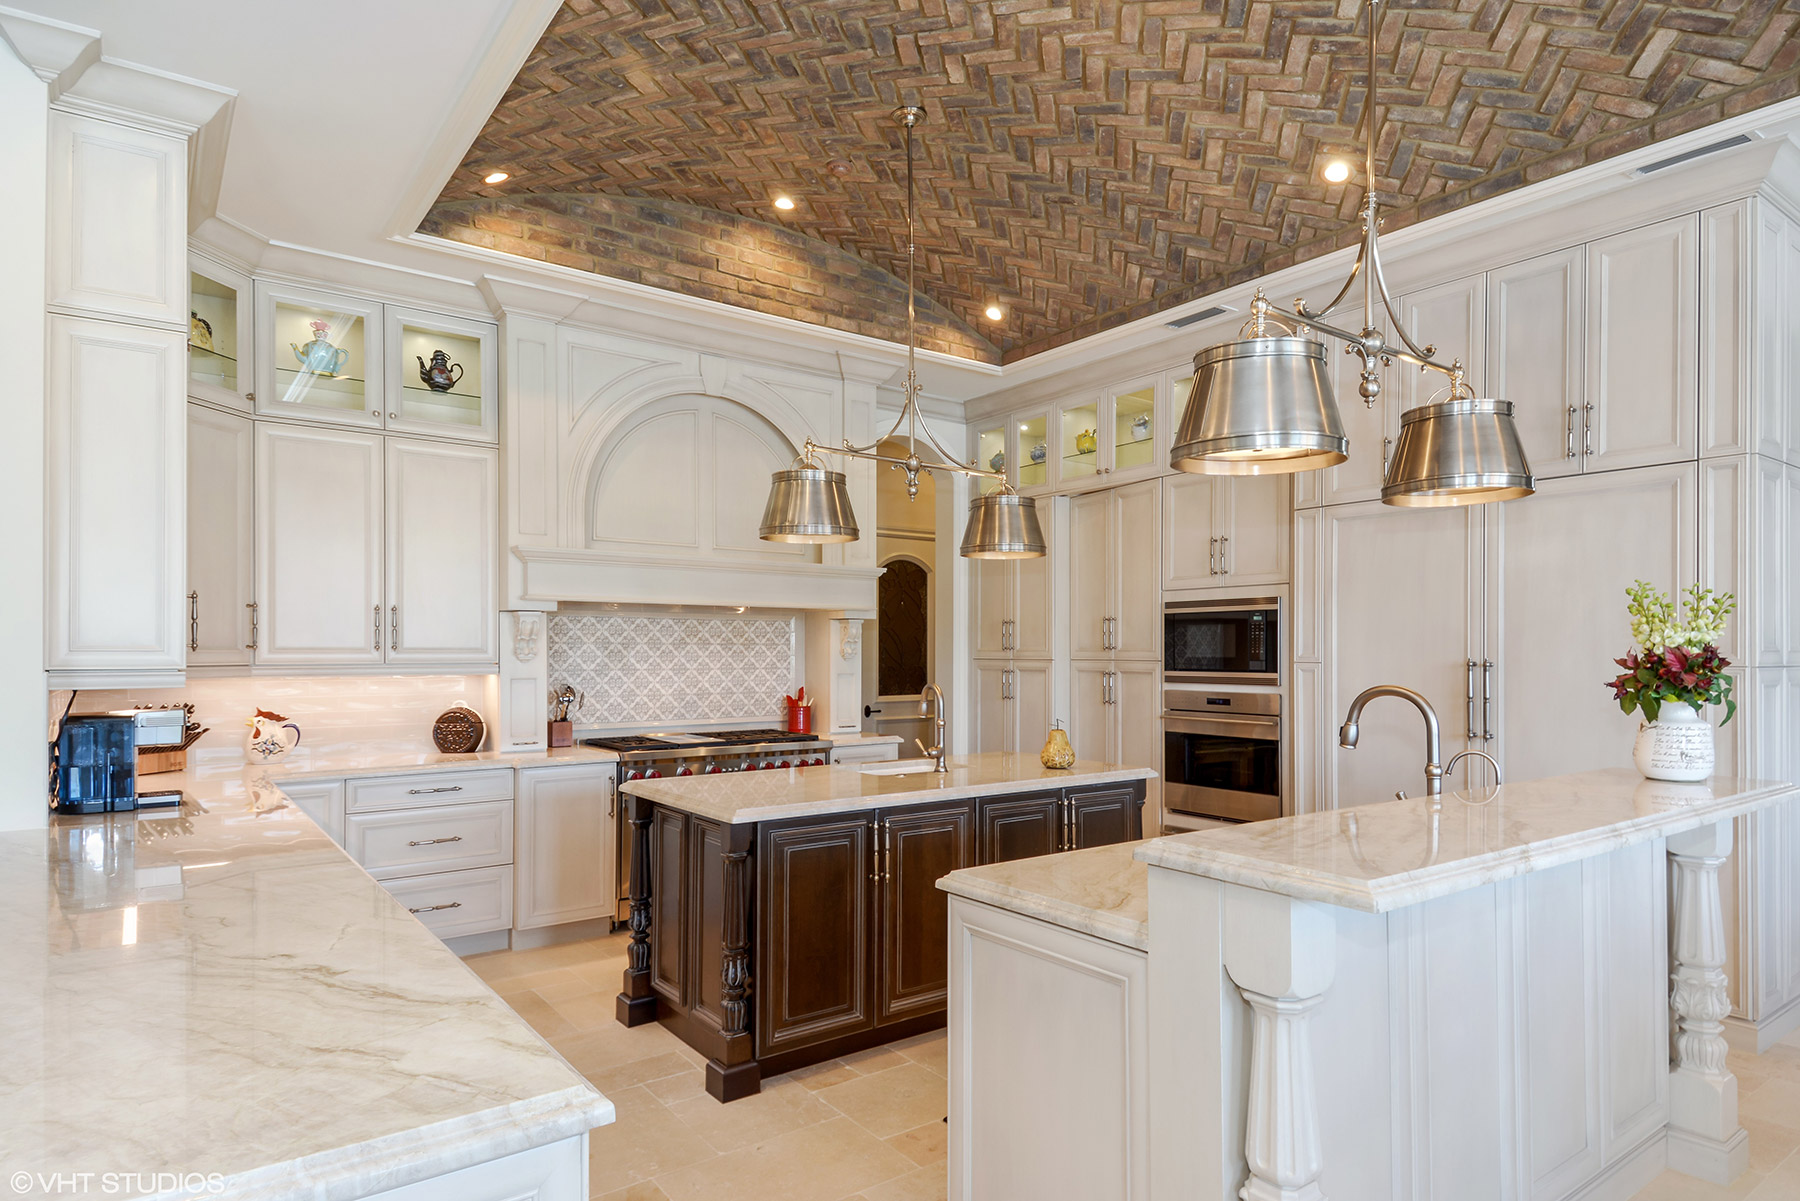 Boca manse with chicago brick ceiling in the kitchen asks 155m records show the property before this current home was built sold for 425 million in 2016 dailygadgetfo Image collections